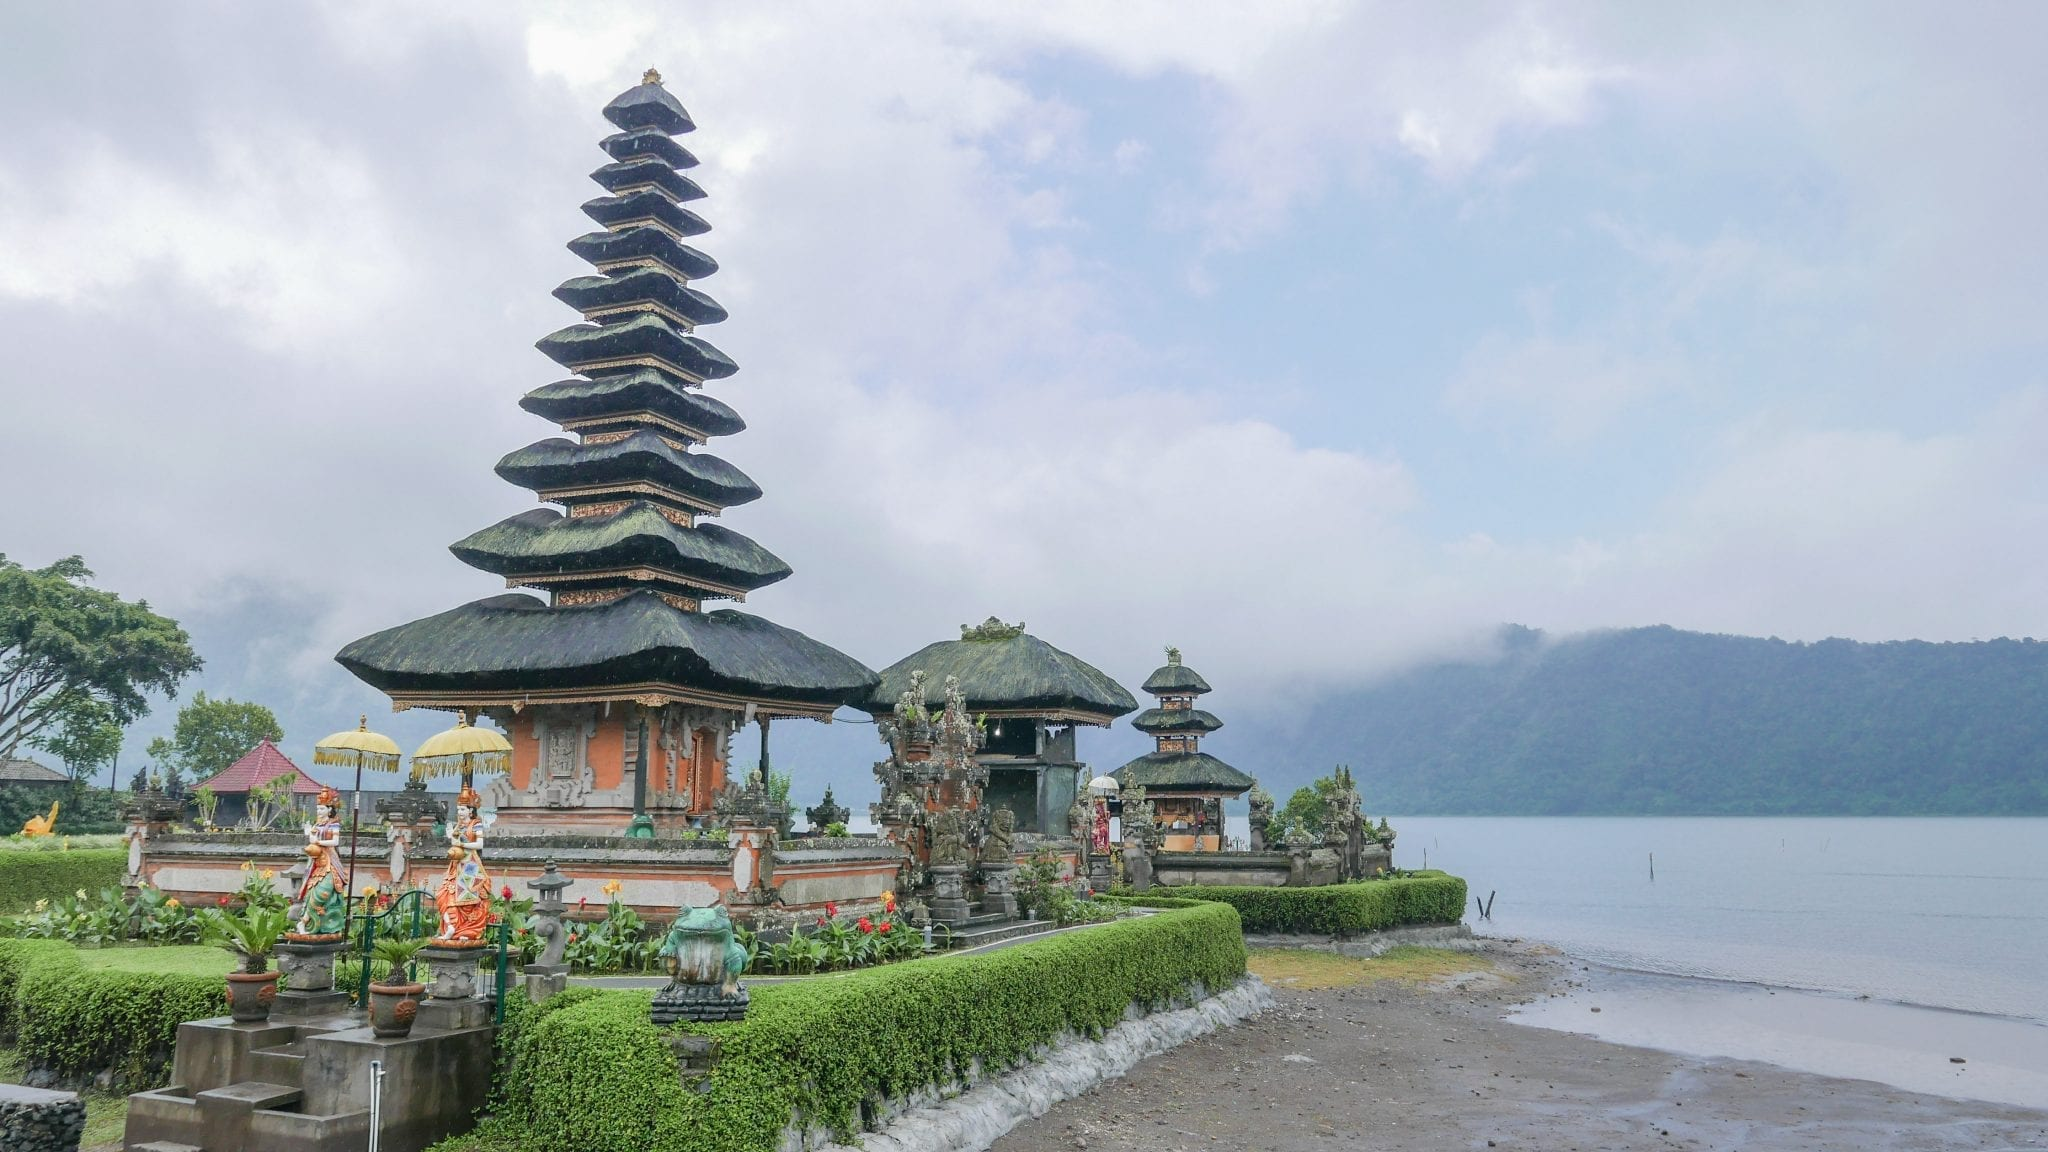 11Around Bali 78 - Bali - An Updated Overview (October 2015)